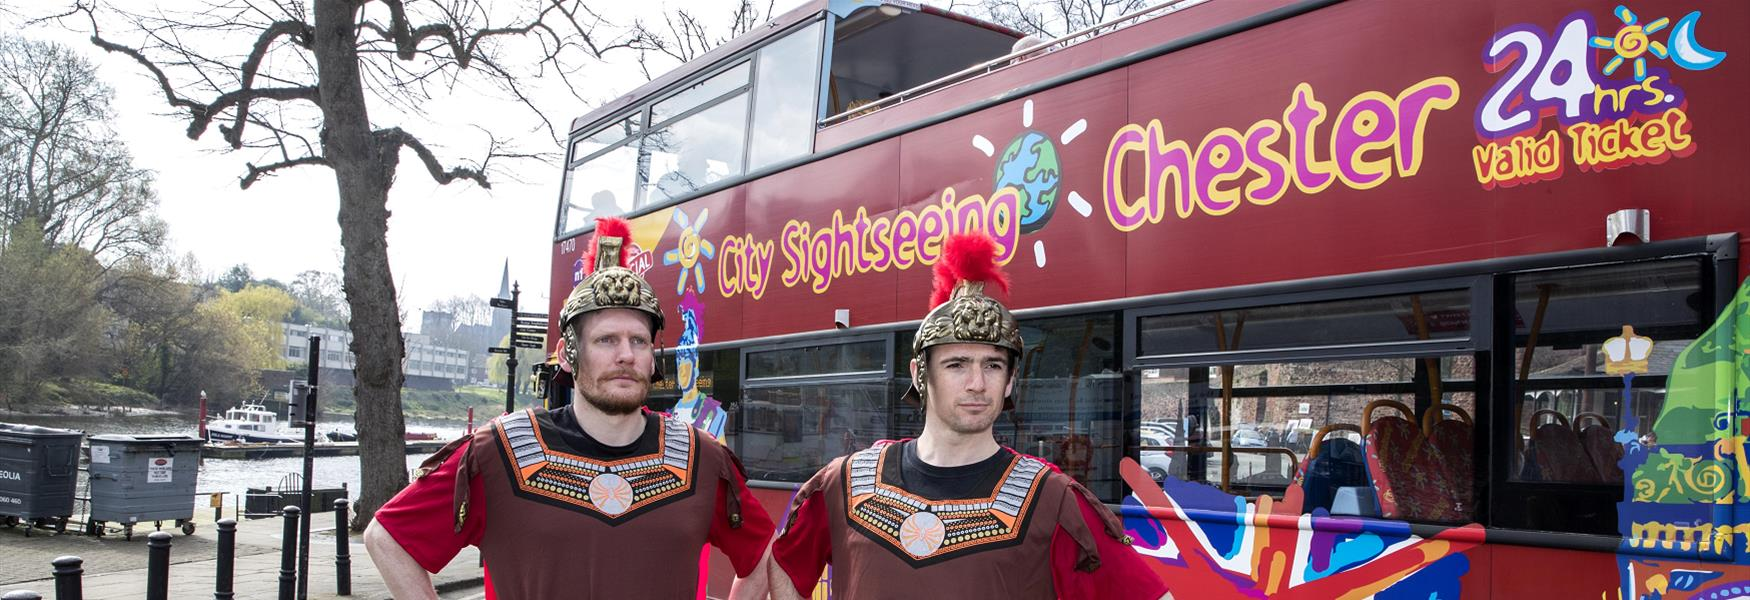 Chester City Sightseeing Tours